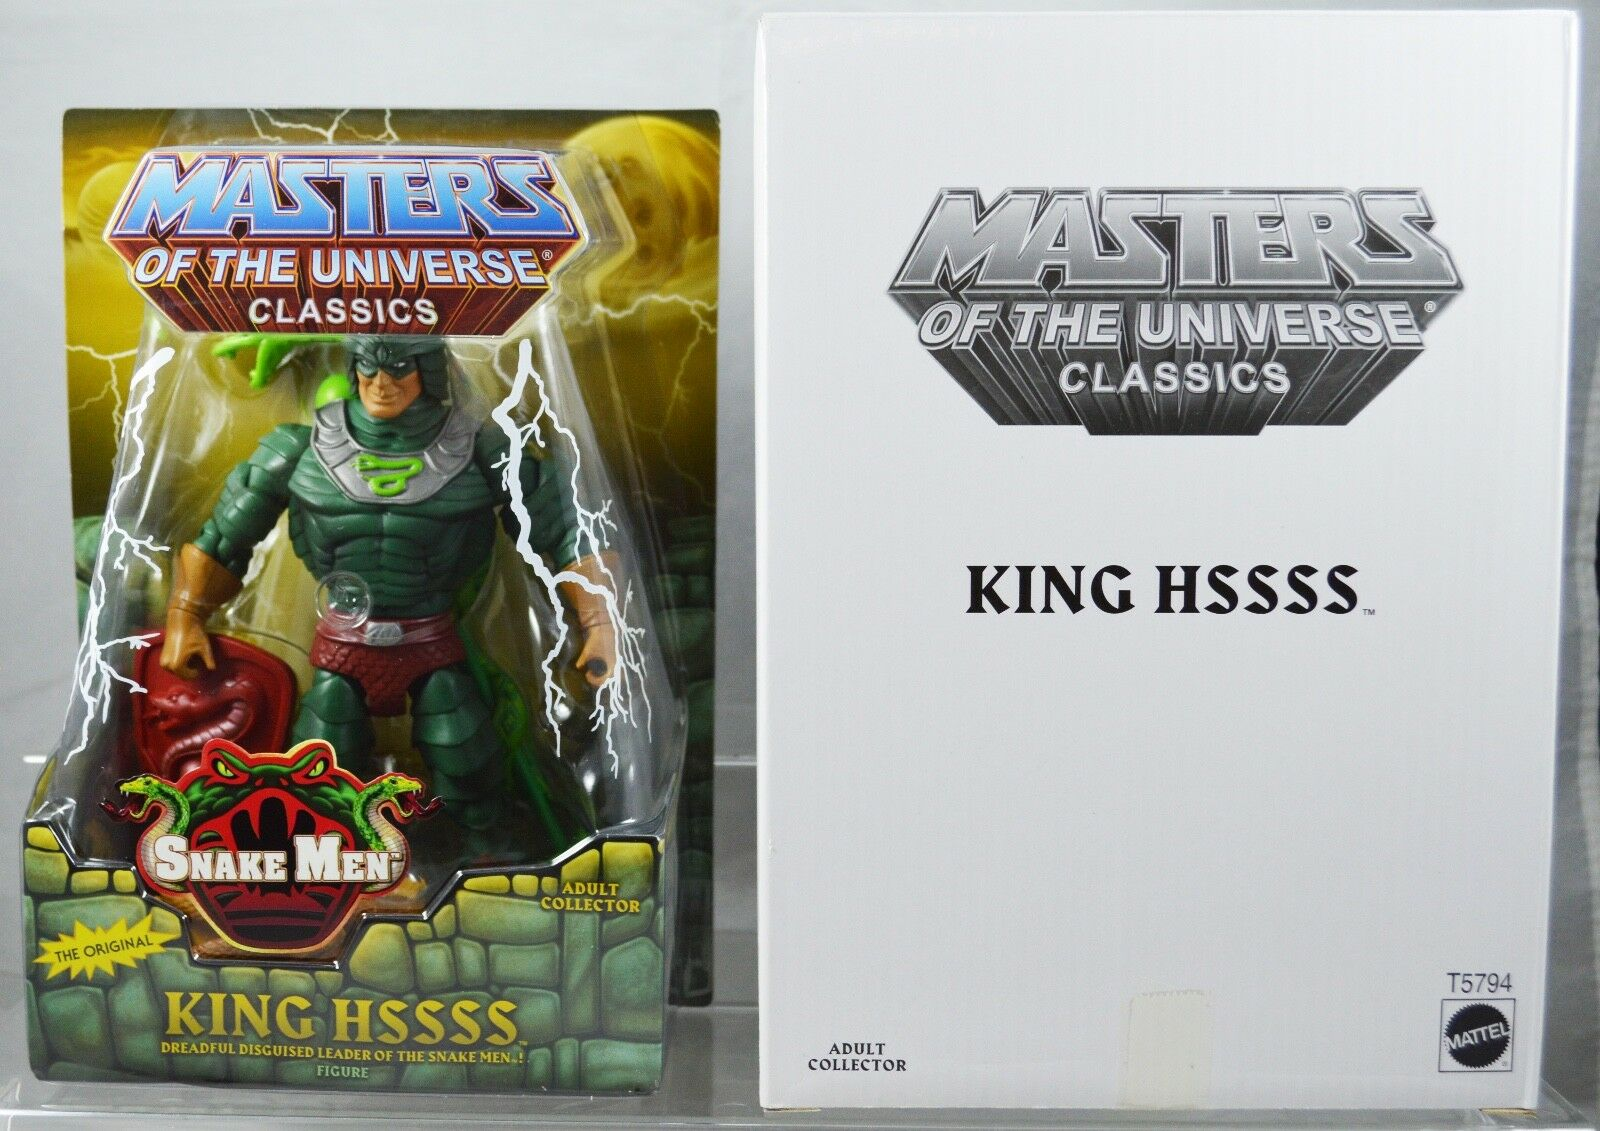 Masters of the Universe Classics KING HSSSS NEW   MOC  FREE S/H